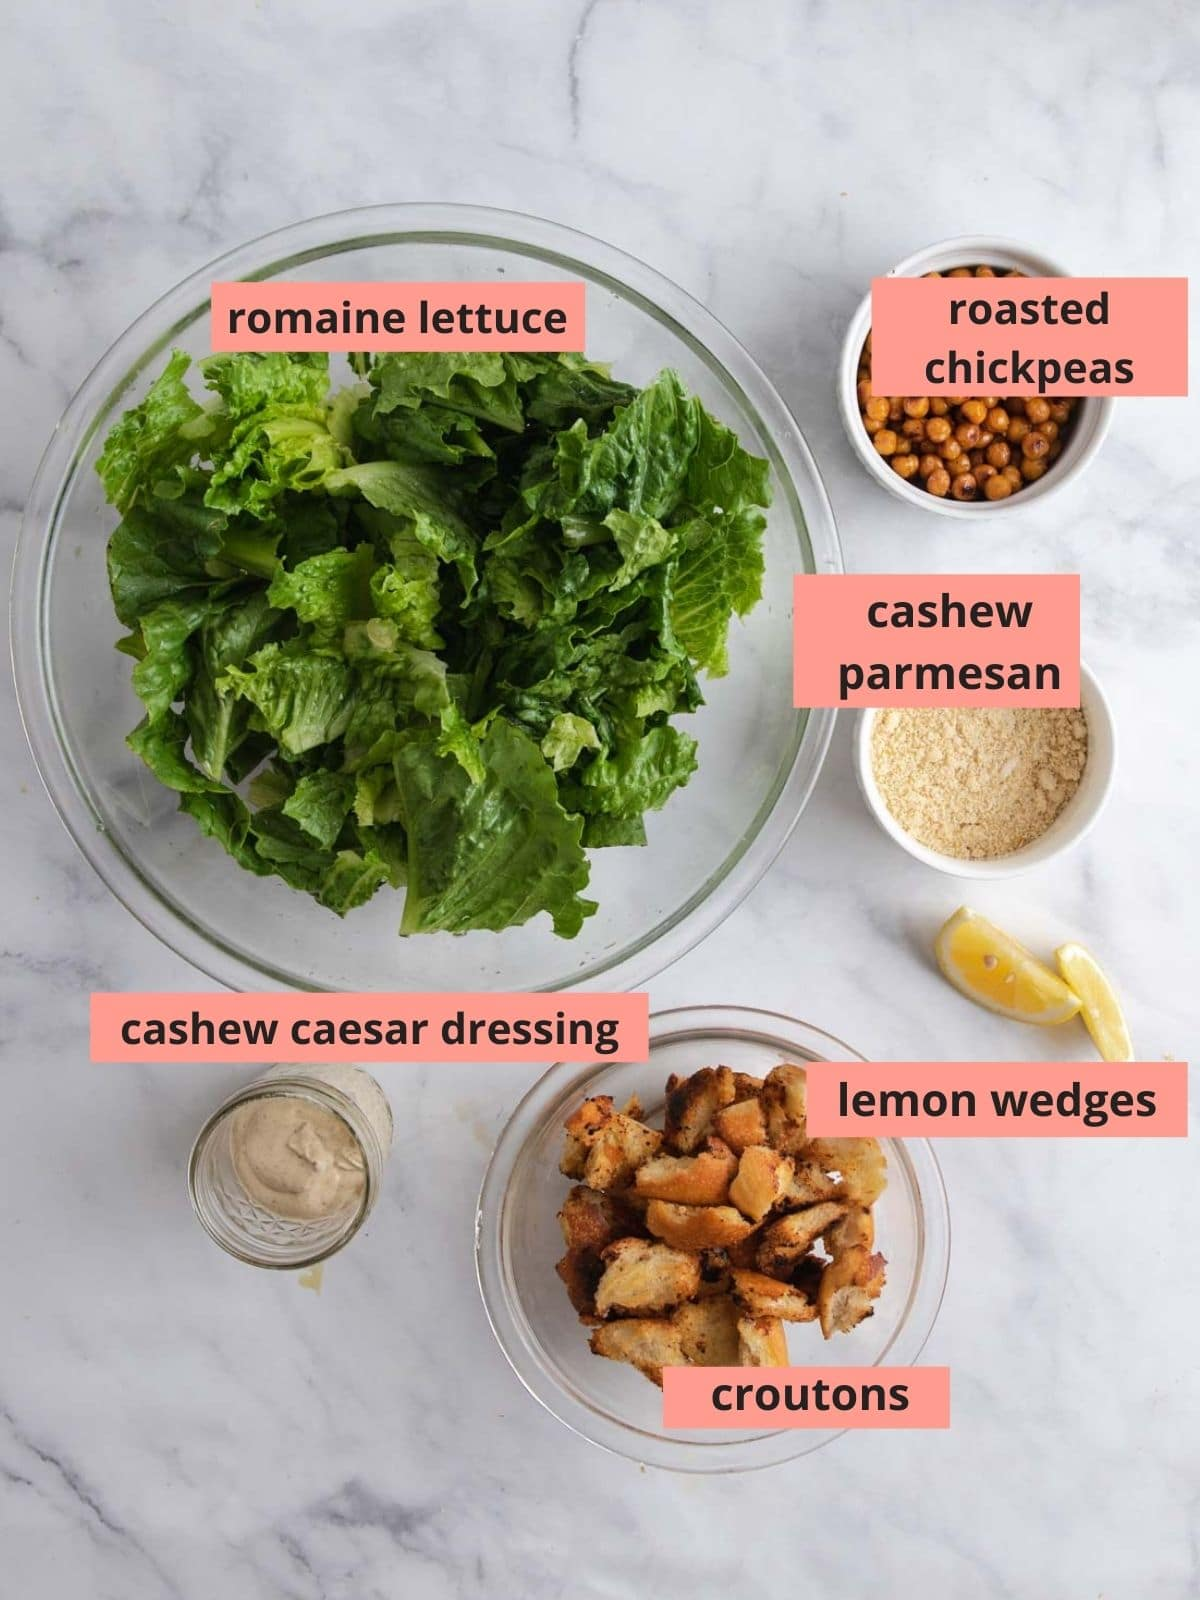 Labeled ingredients used to make caesar salad